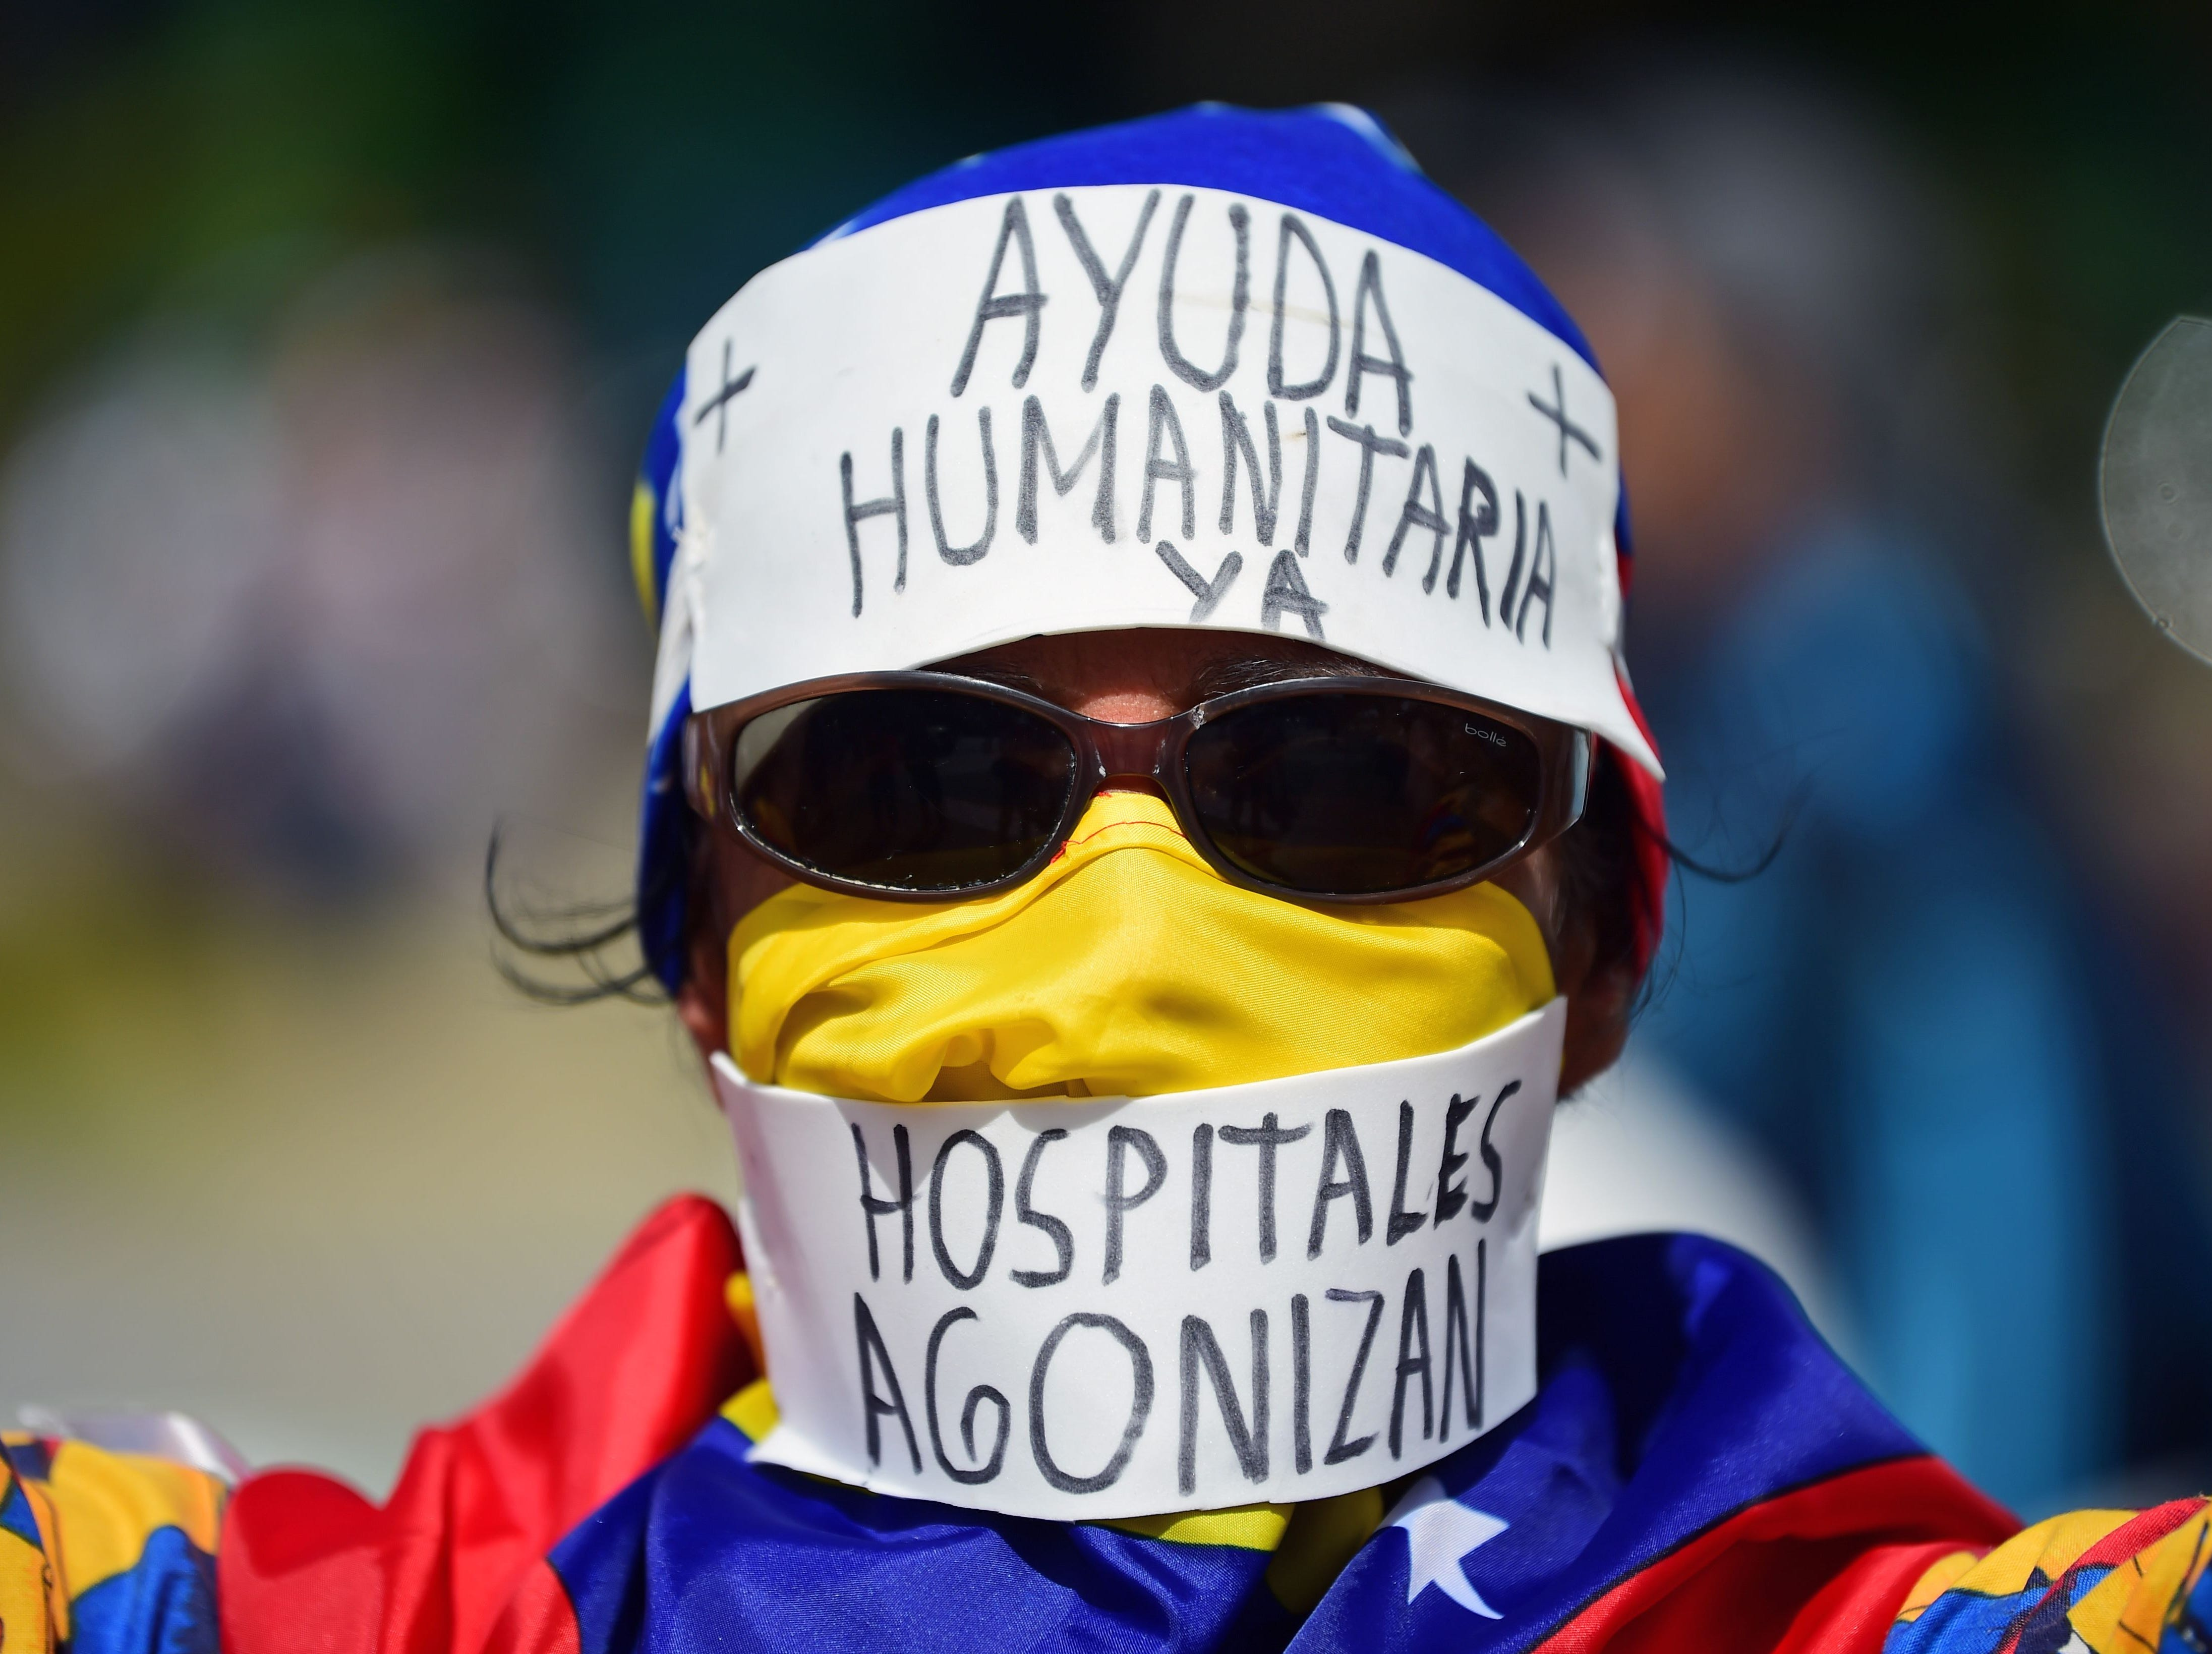 Supporters of Venezuelan opposition leader Juan Guaido wait to take part in a rally in Caracas, on Feb. 23, 2019.